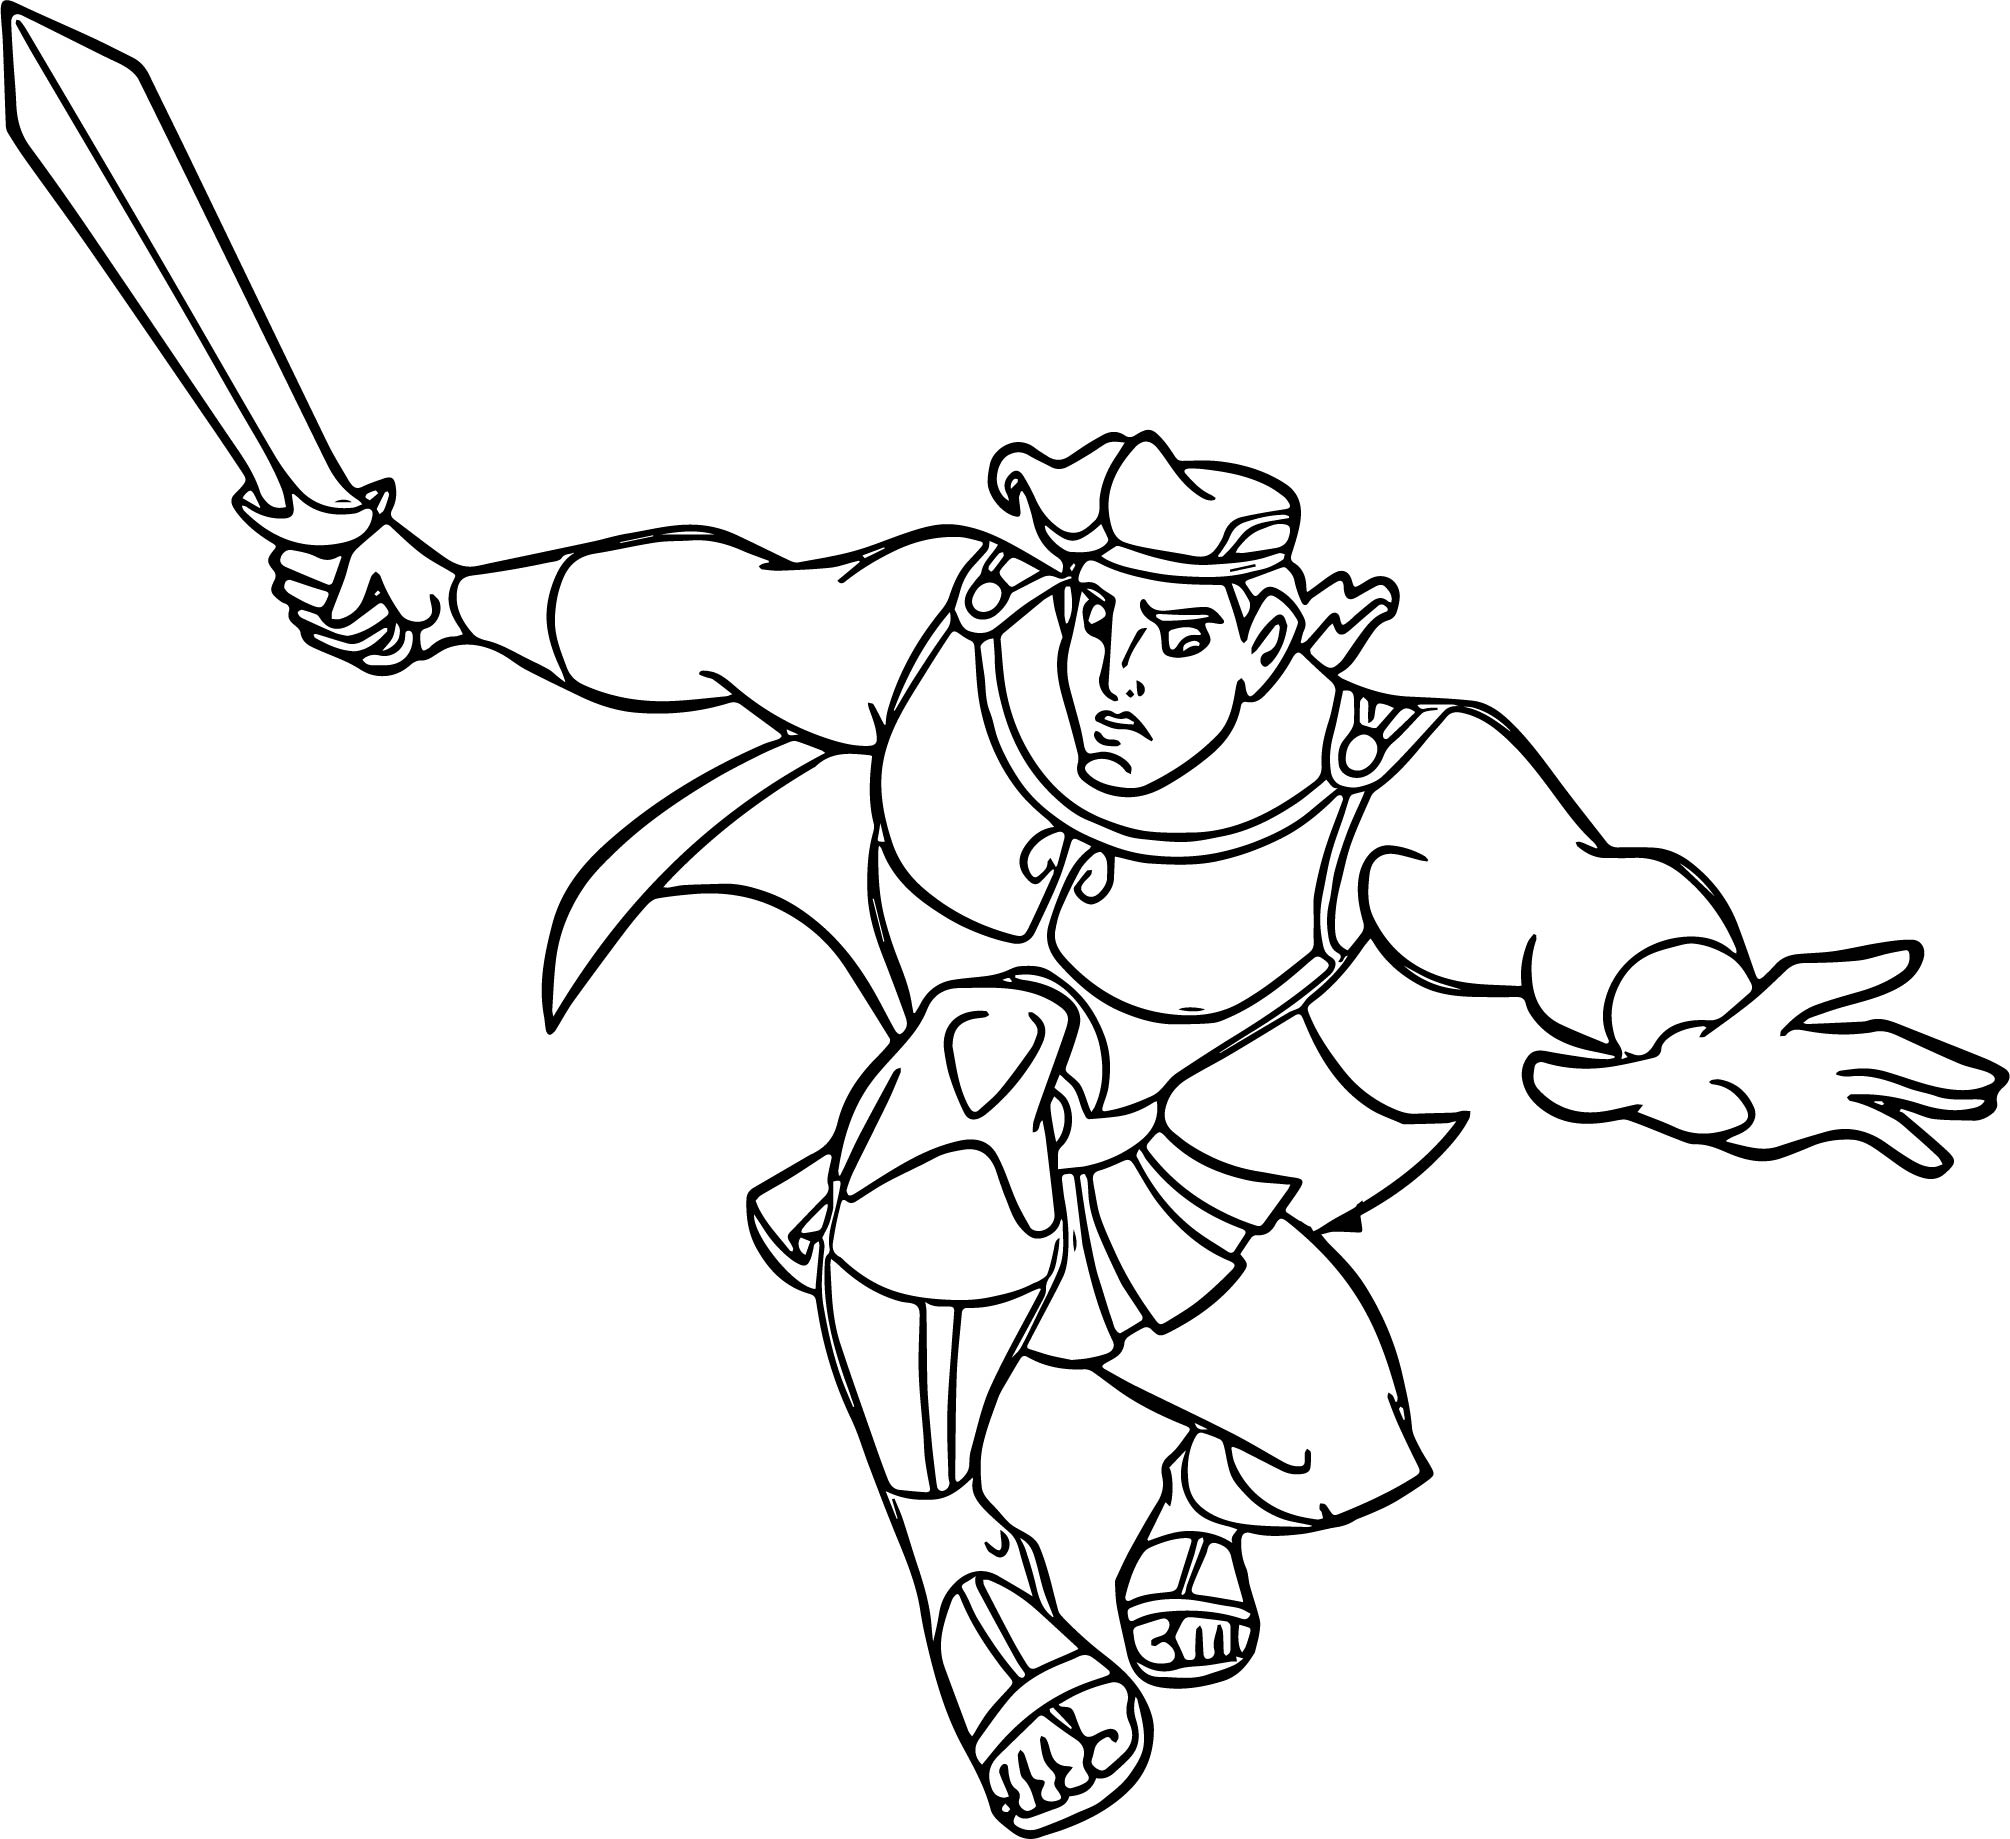 Hercules Ules Sword Coloring Pages